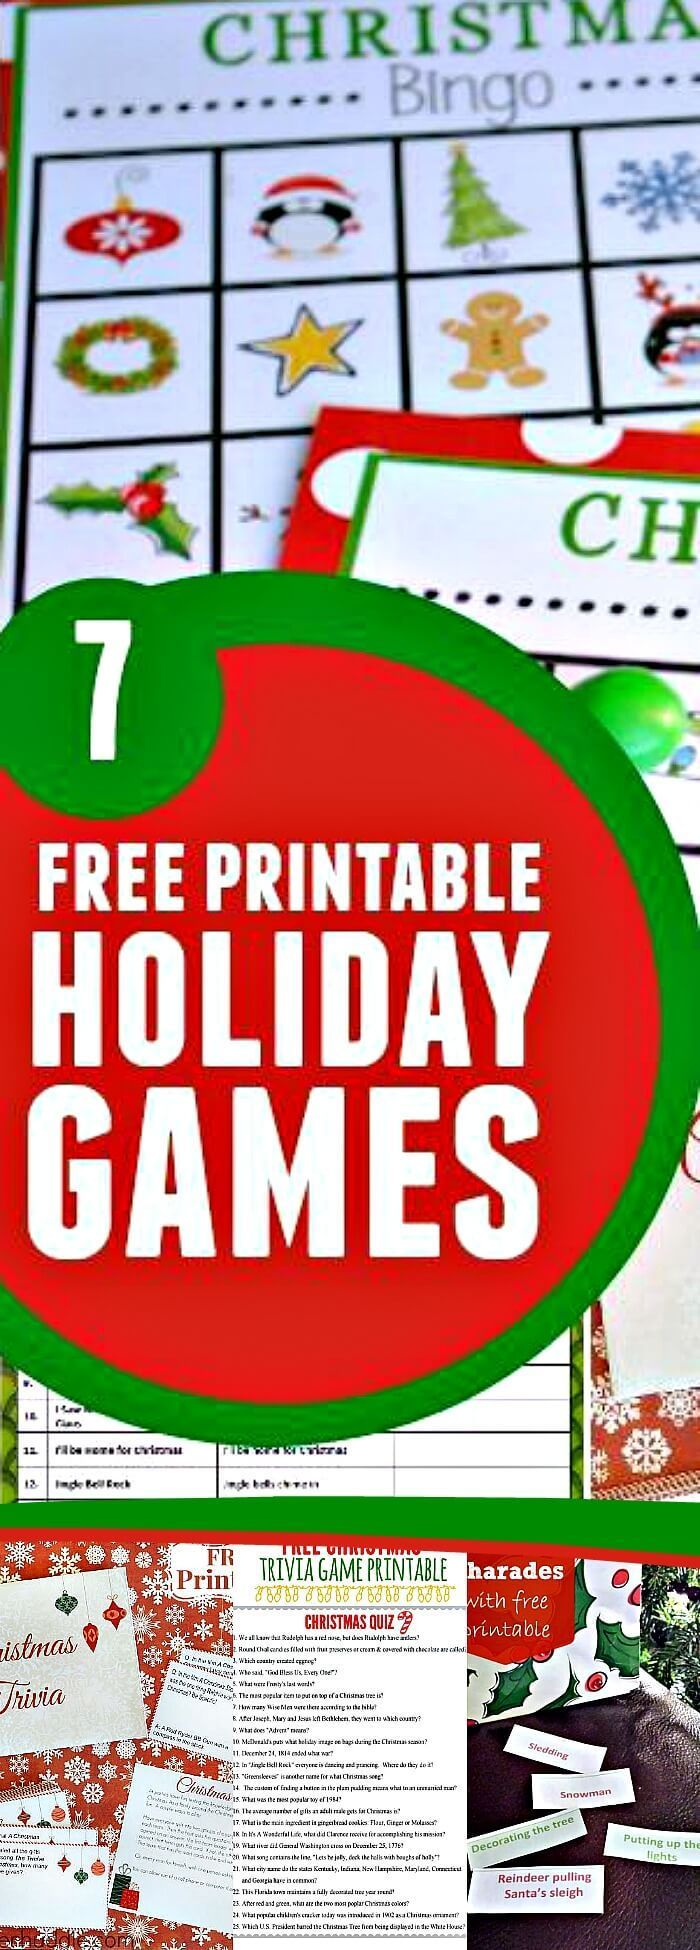 7 Free Printable Holiday Games, These Awesome Games Will Make Your Party Tons Of Fun, Click Through And Print Out Today!